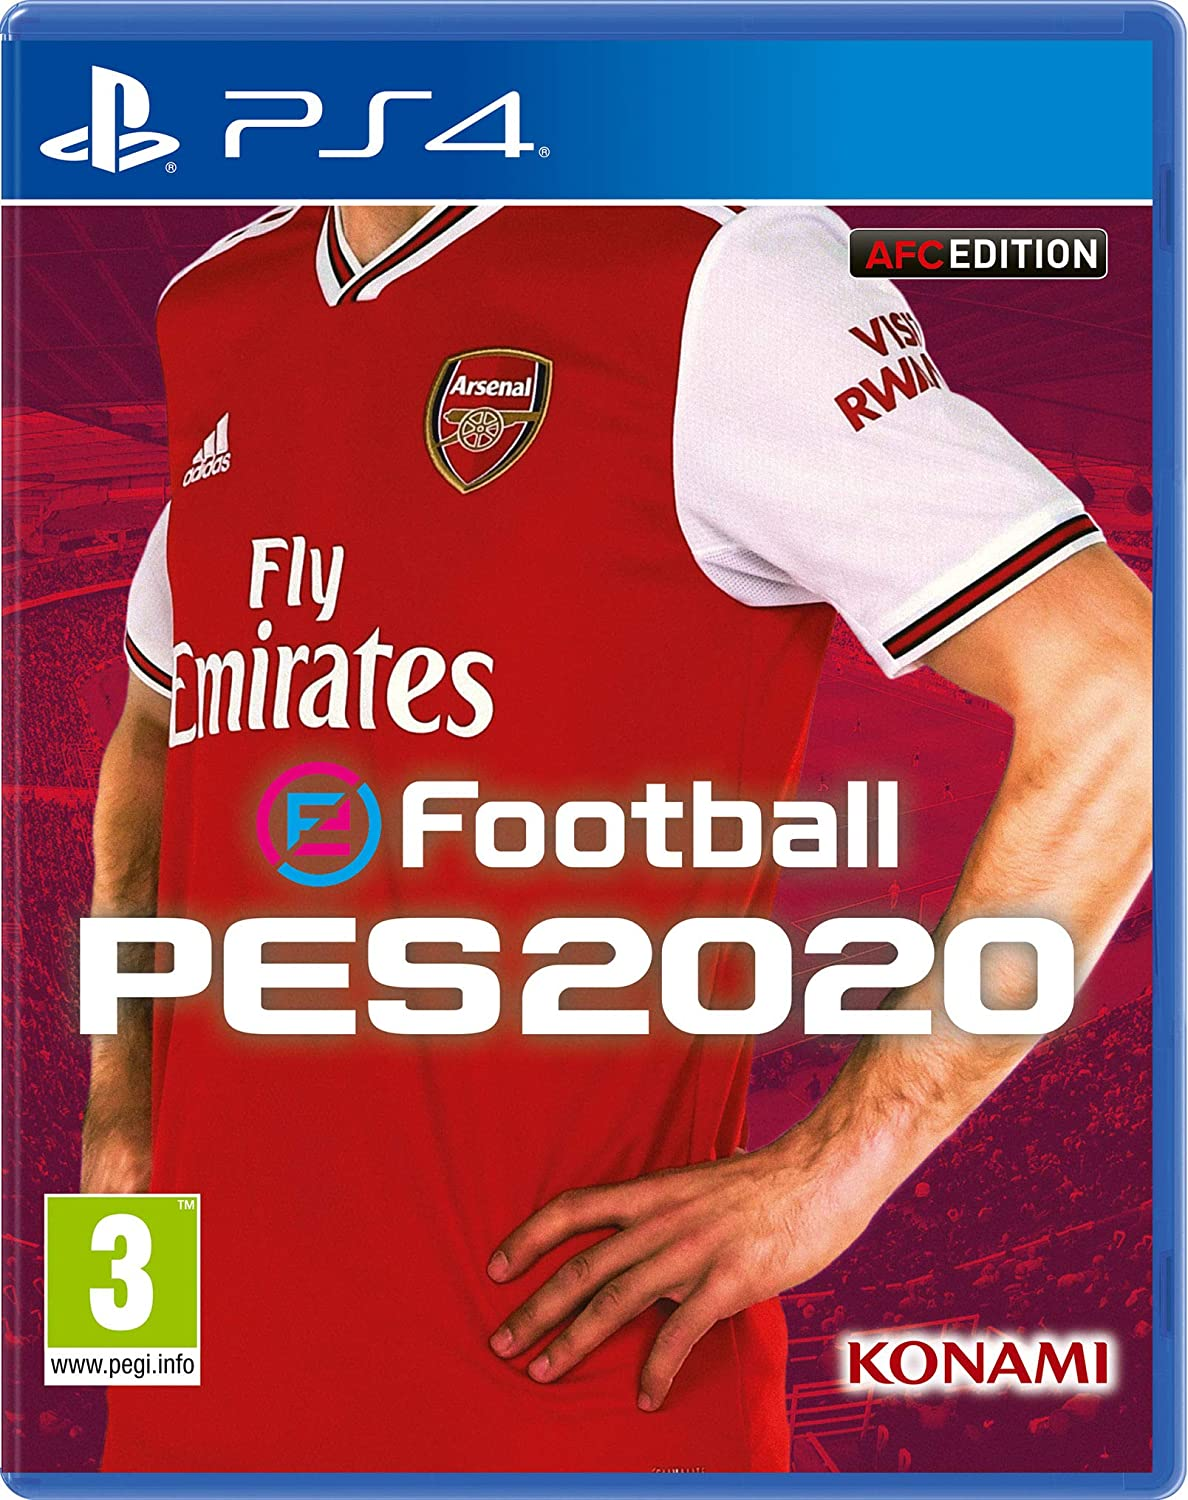 Efootball PES 2020 Arsenal FC Edition - Playstation 4 [Importación ...